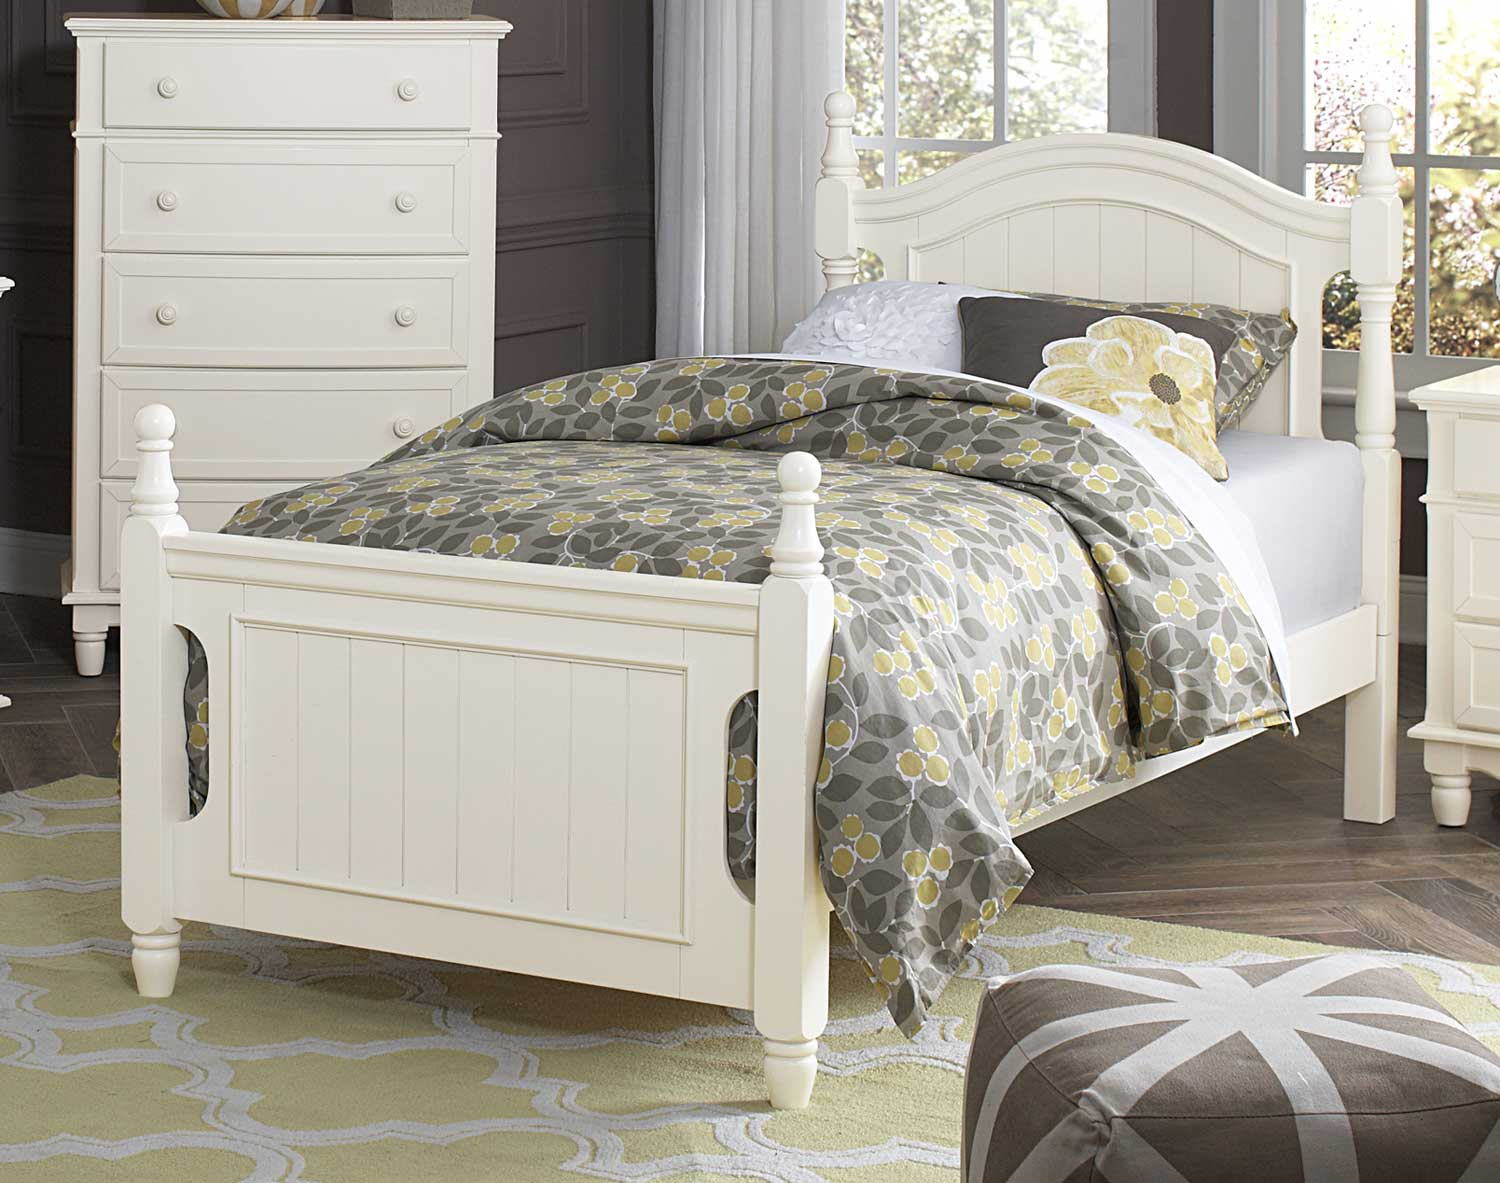 Homelegance Clementine Bed - White